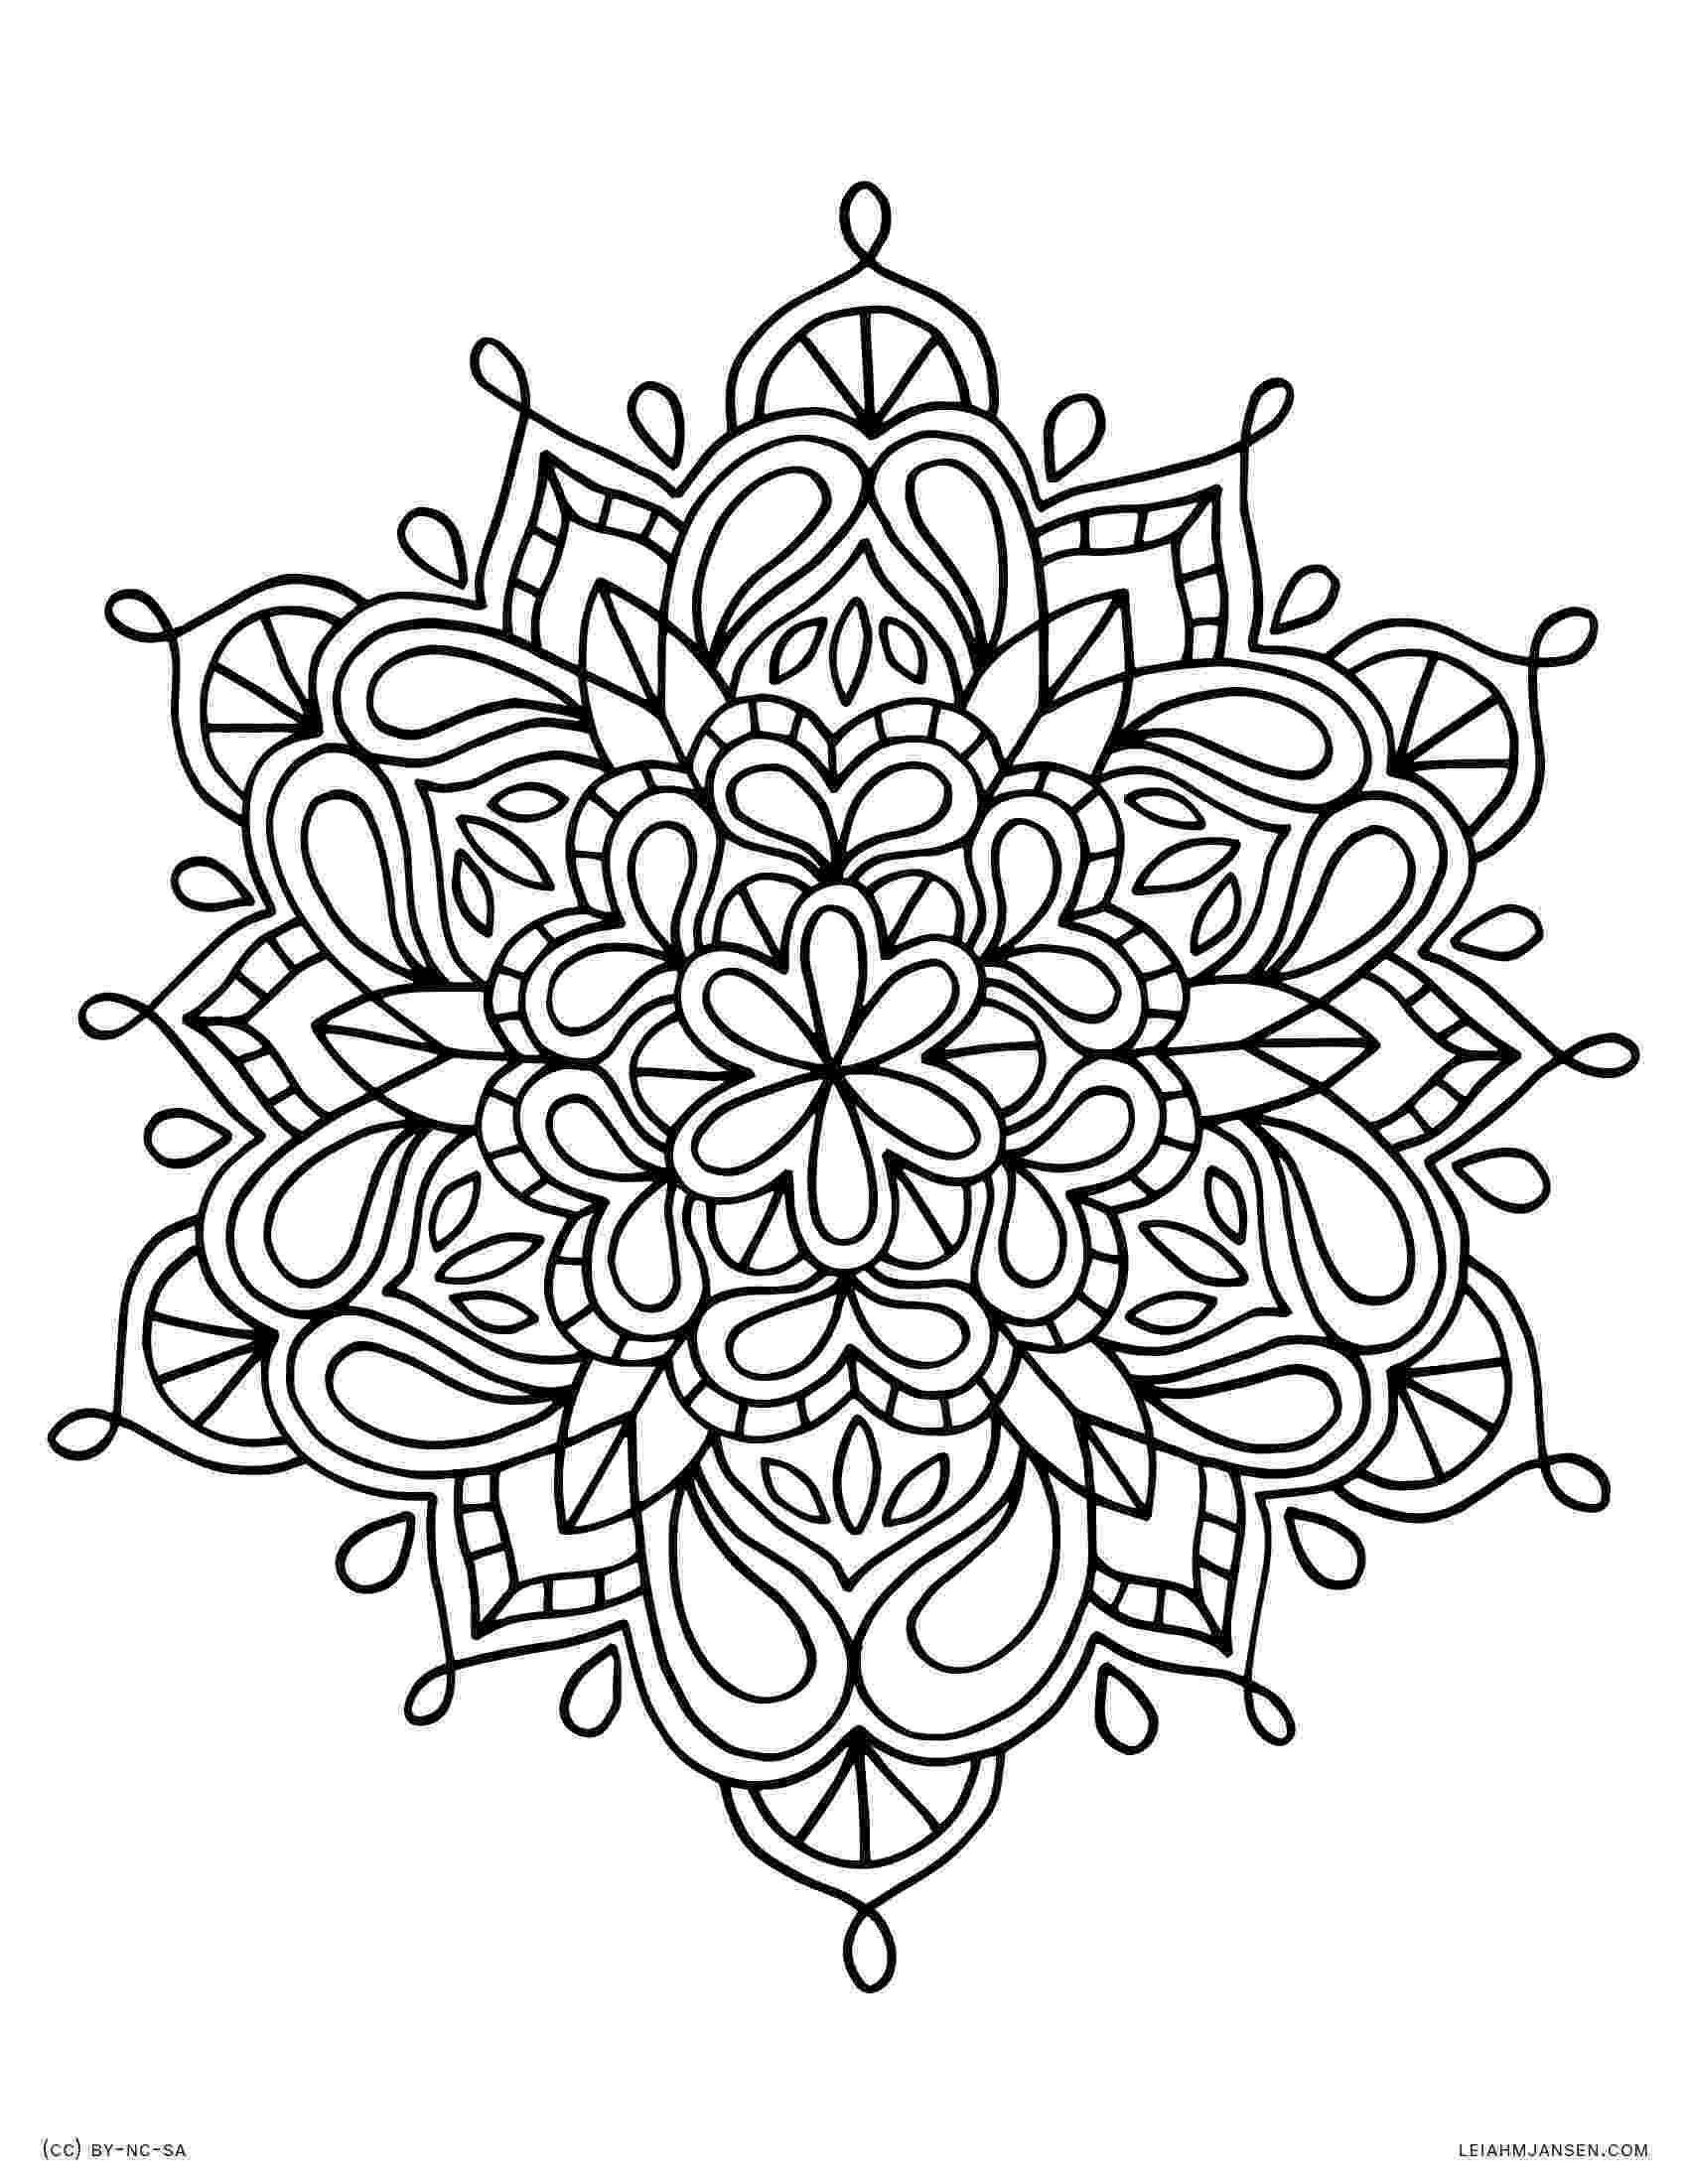 printable mandala coloring pages for adults 20 free printable mandala coloring pages for adults pages for coloring printable mandala adults